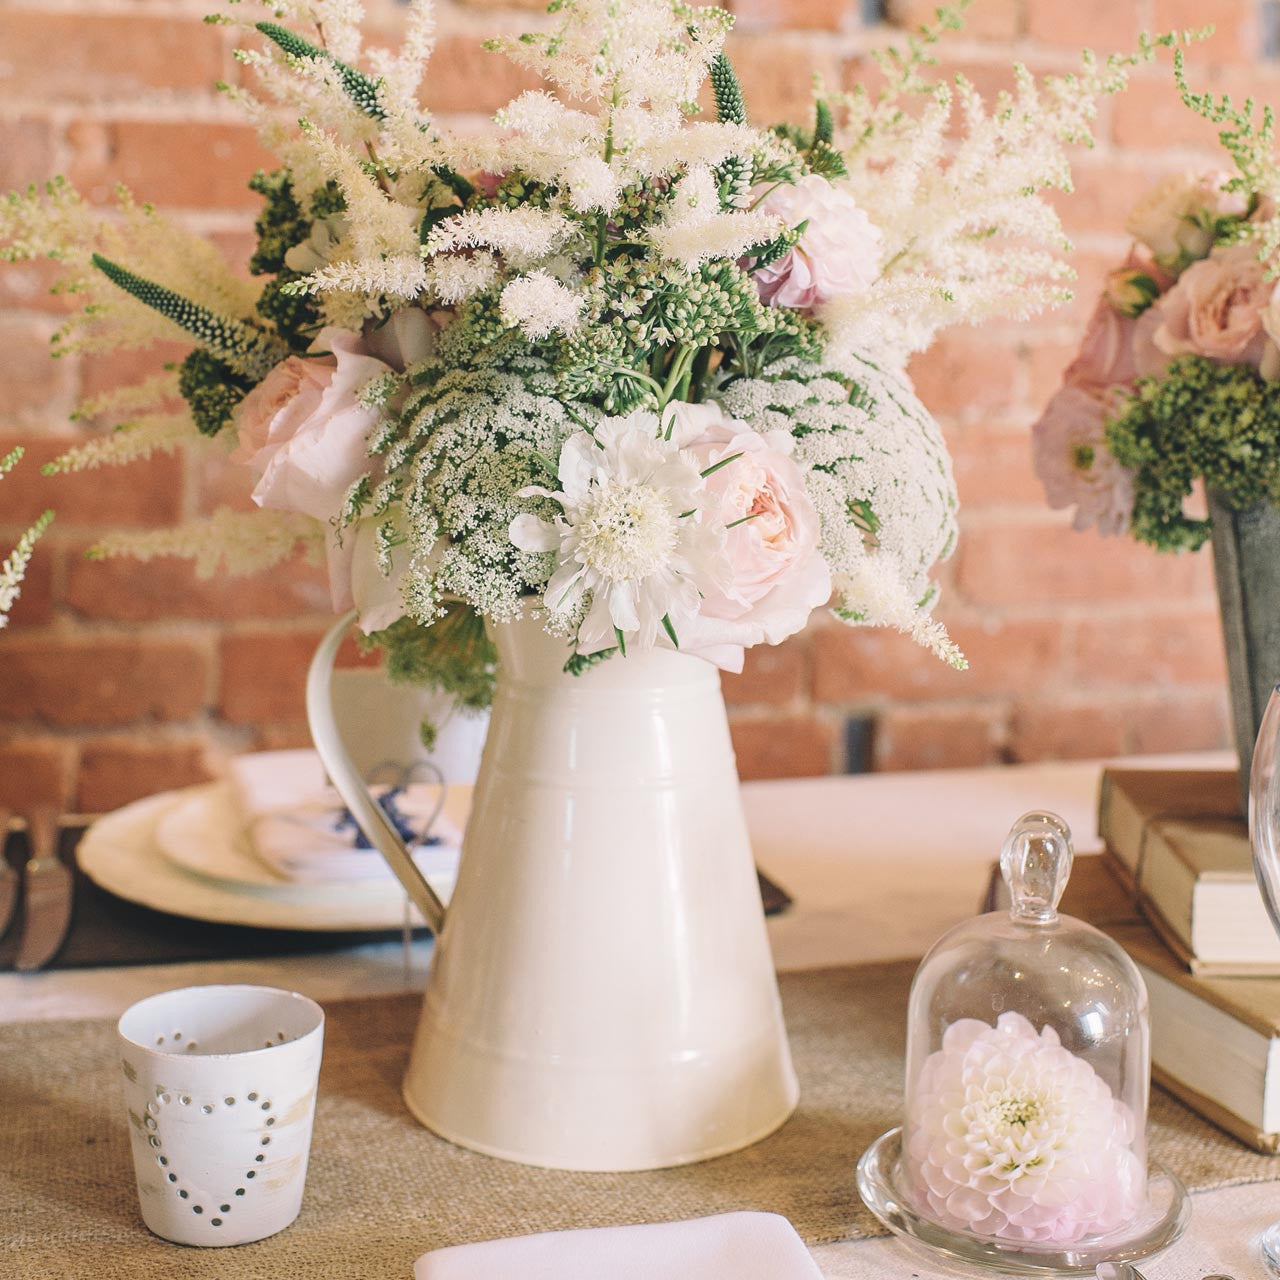 Country Wedding Centerpieces Ideas: Vintage Country Heart Tea Light Holder